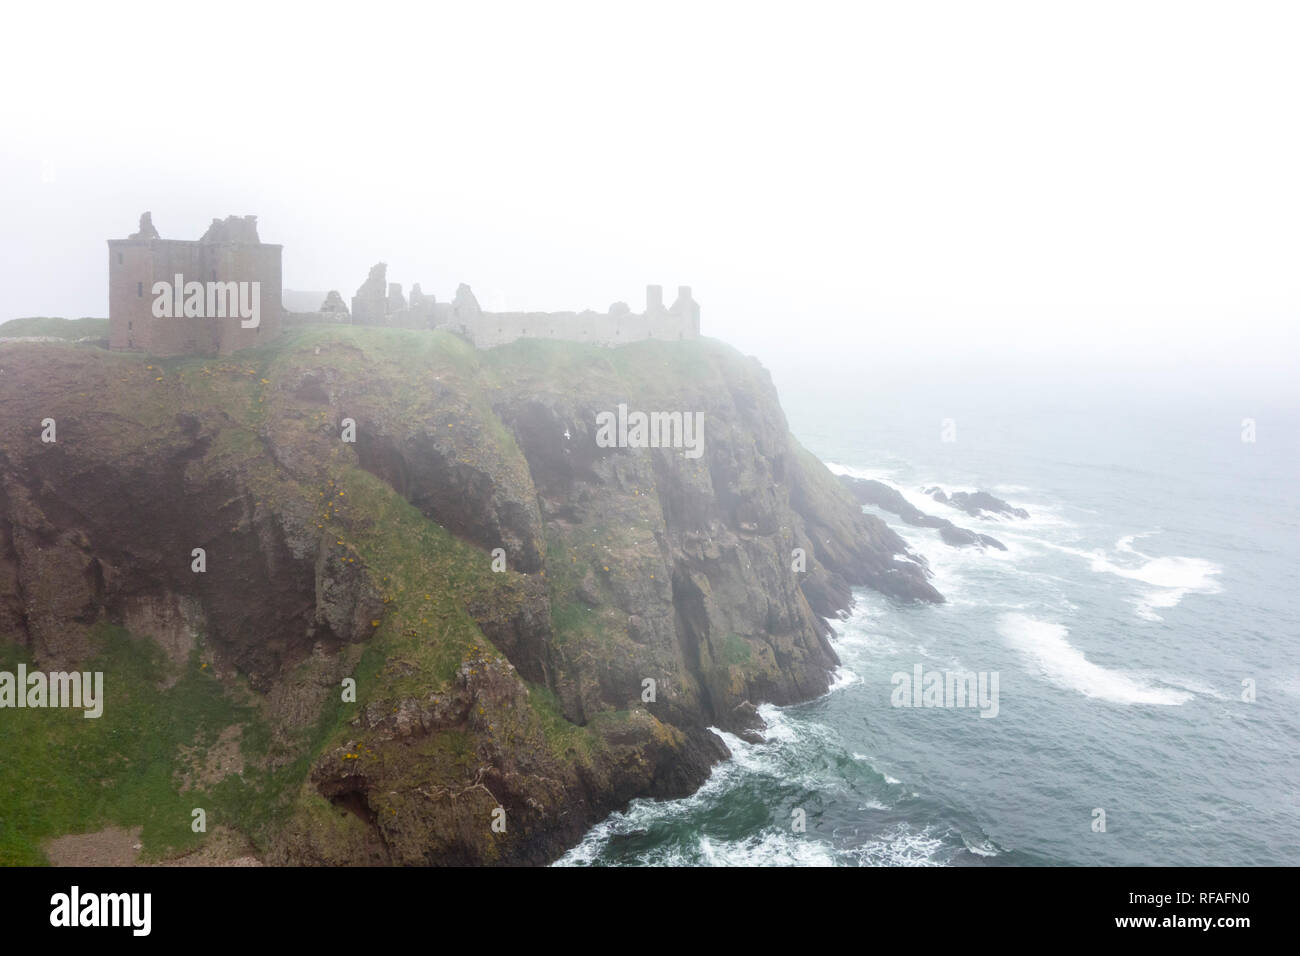 Dunnottar Castle in the mist, ruined medieval fortress near Stonehaven on sea cliff along the North Sea coast, Aberdeenshire, Scotland, UK - Stock Image